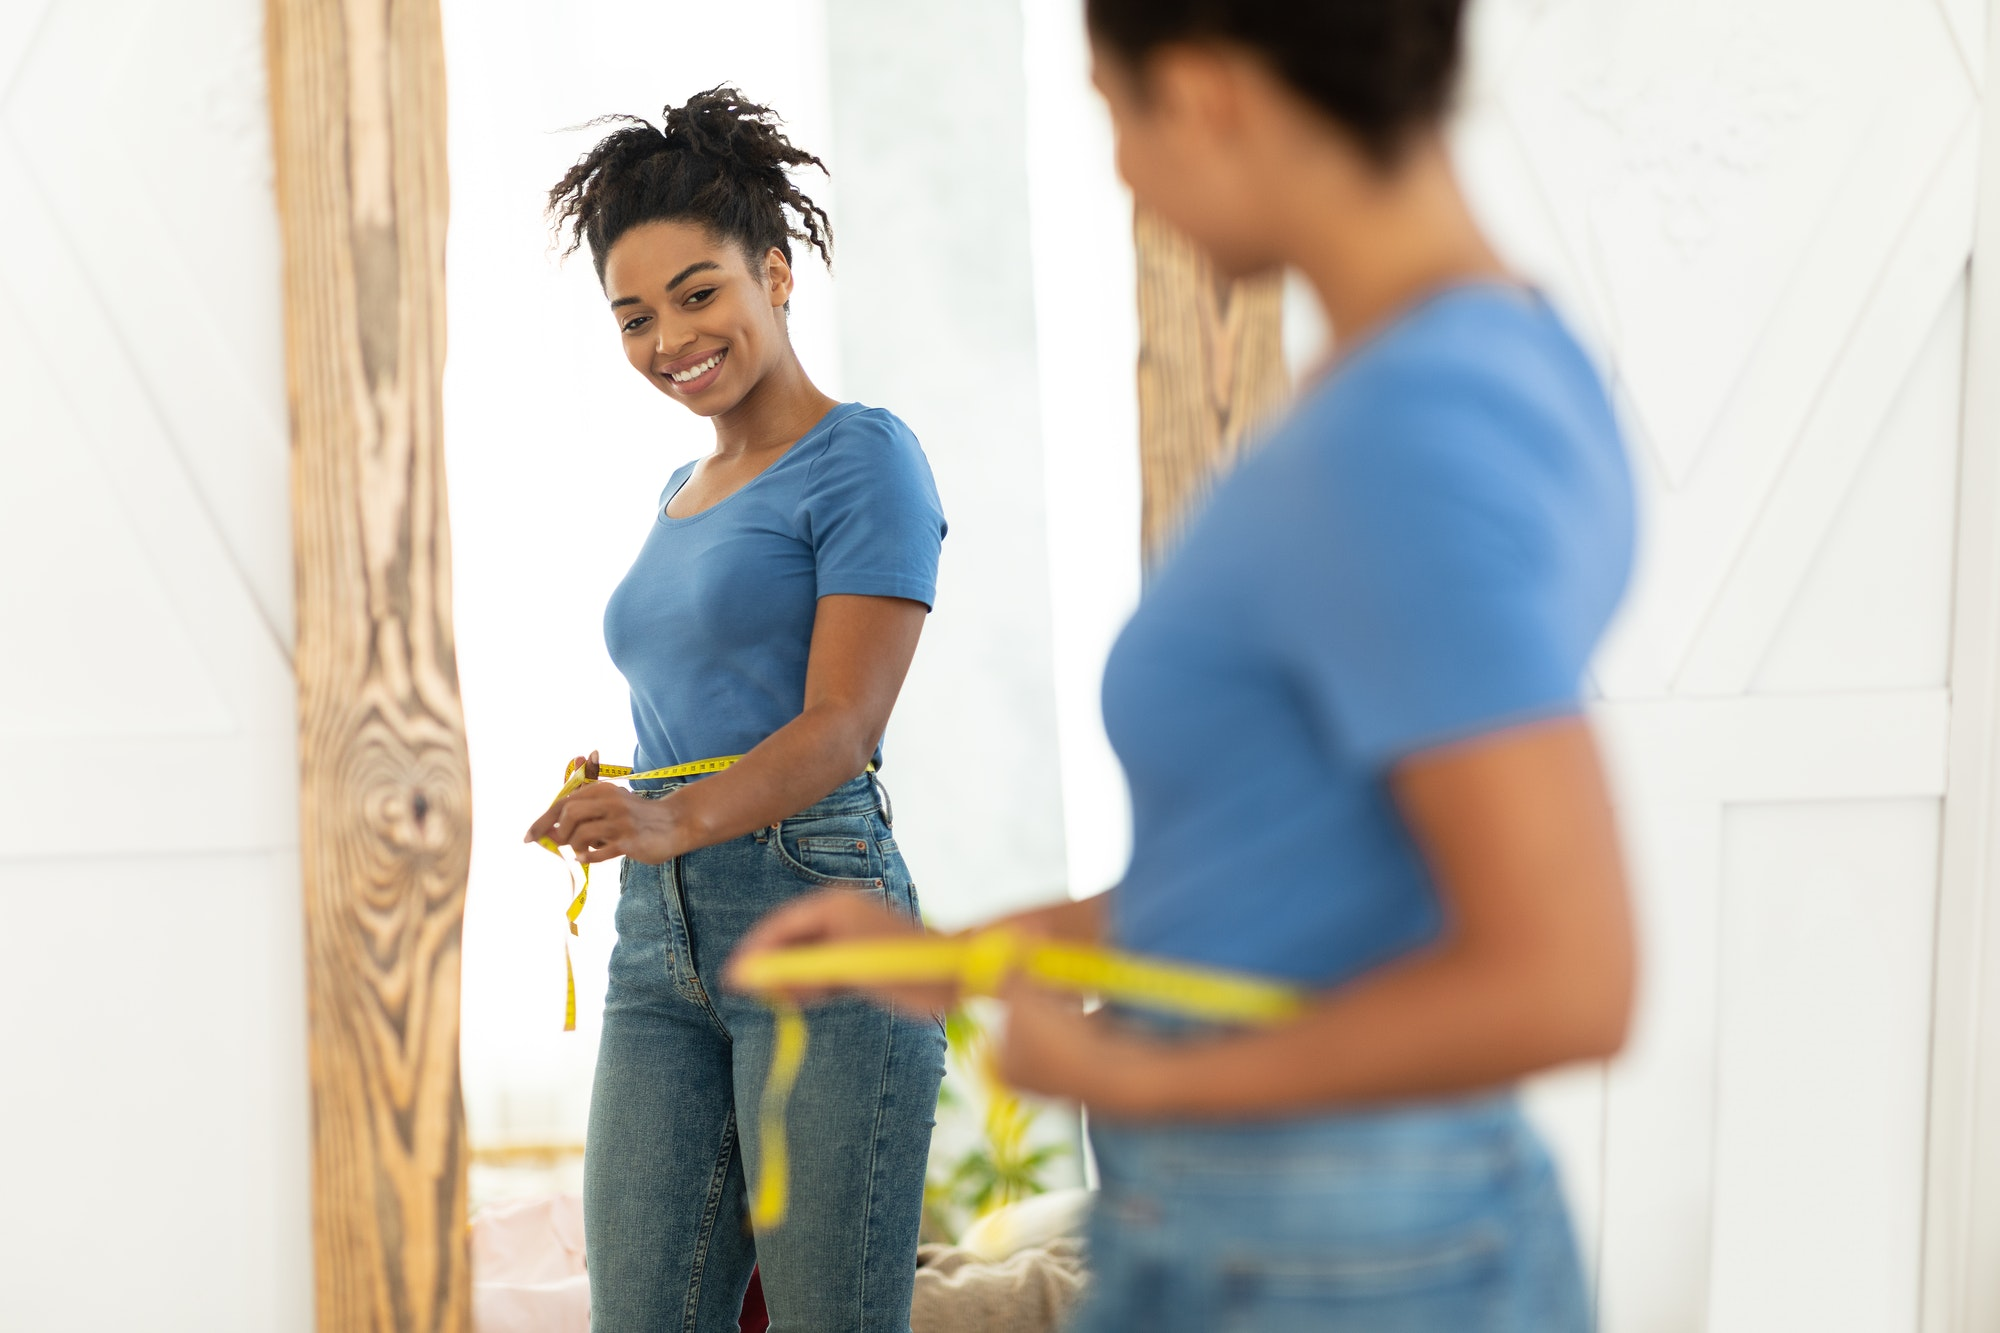 Cheerful Black Lady After Weight-Loss Measuring Waist With Tape Indoors